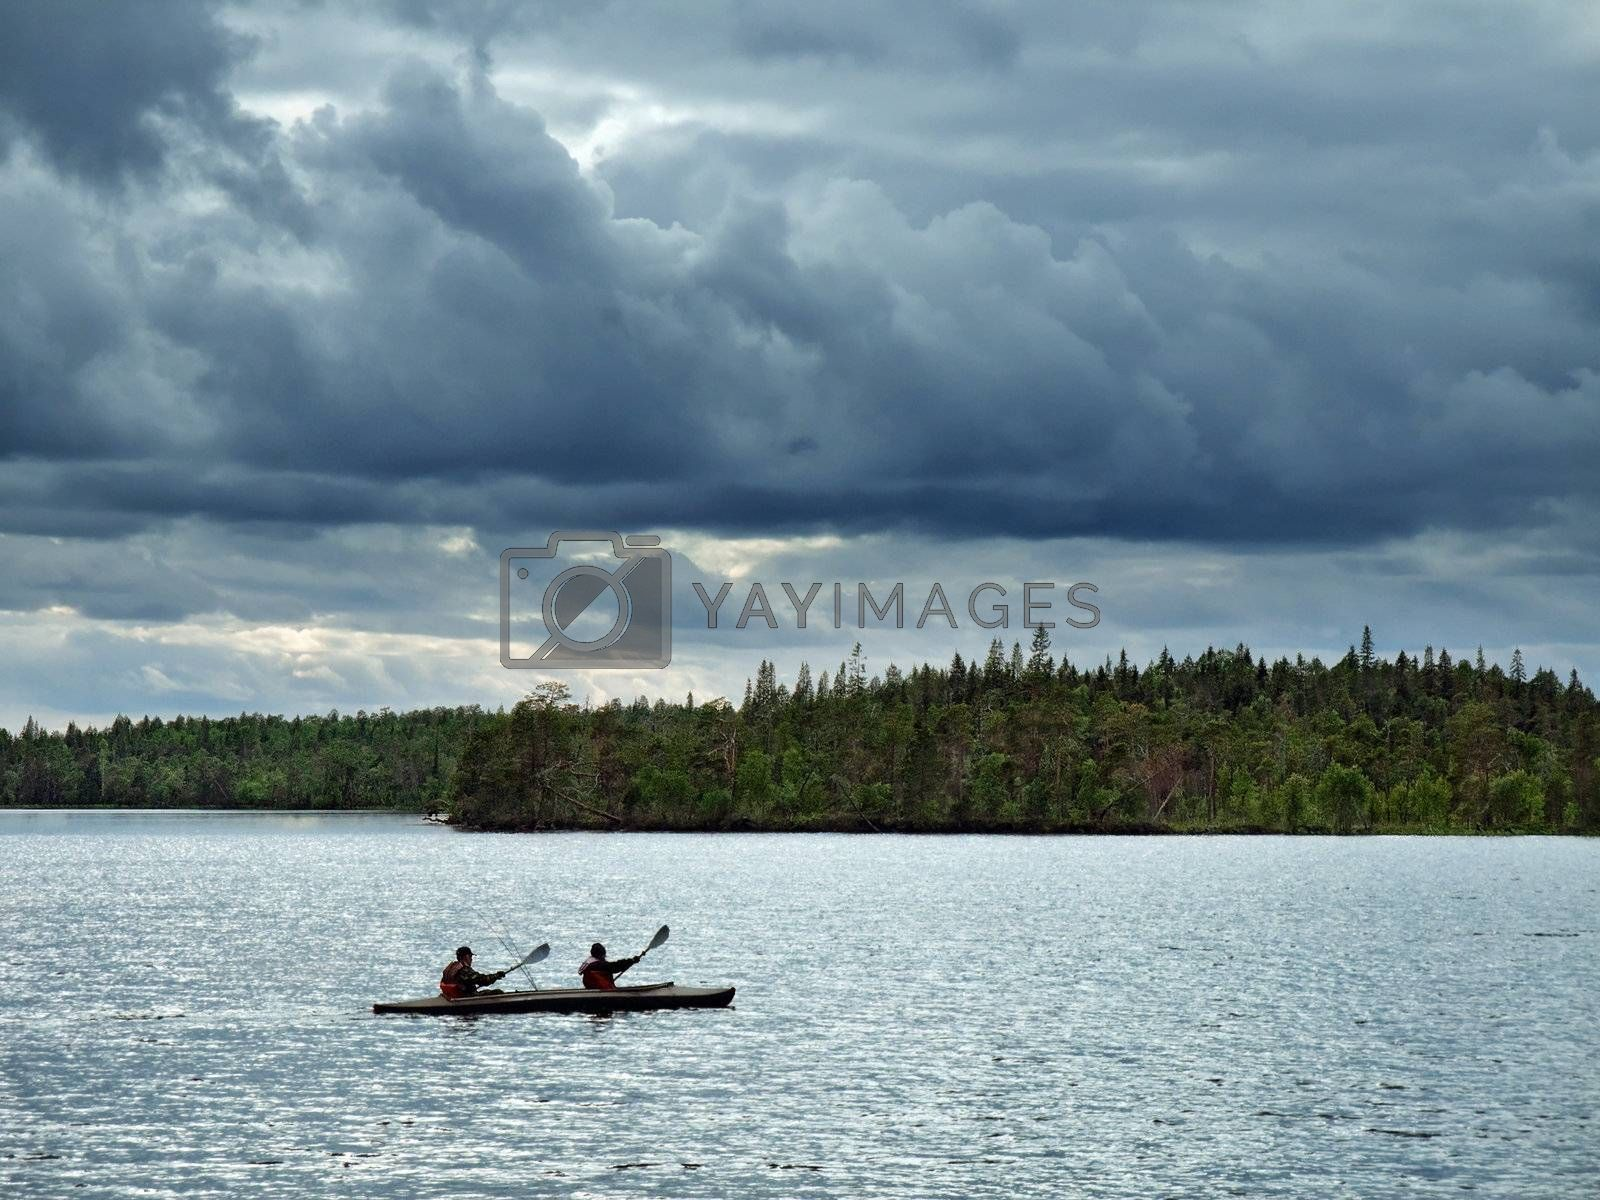 canoe travel on lake at light northern night